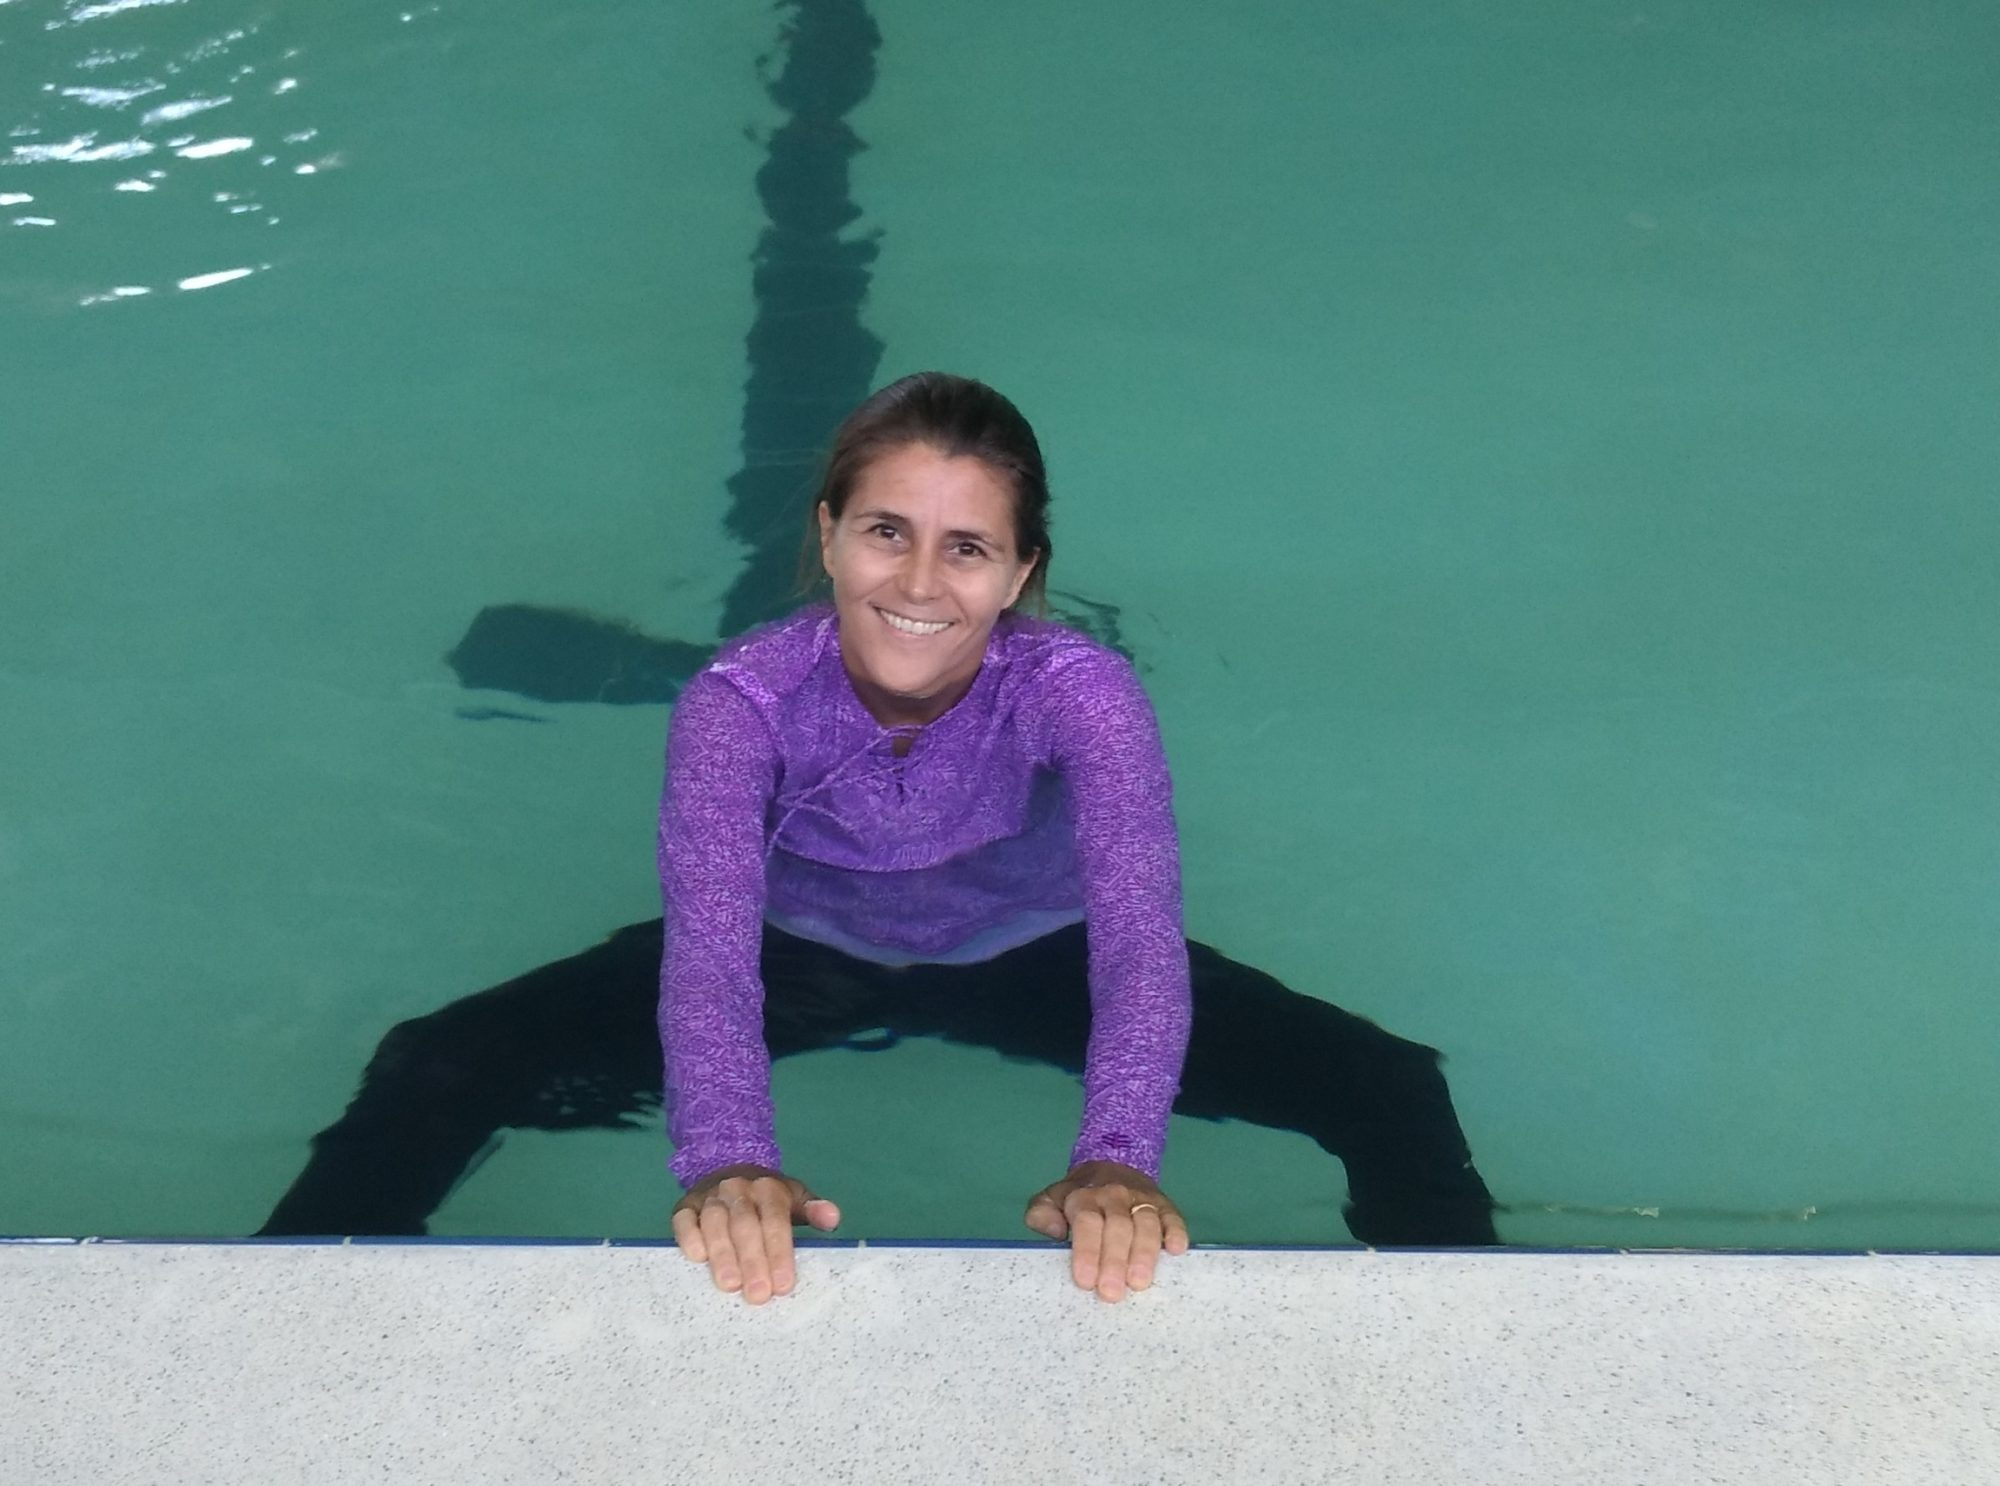 woman doing dead bug pose in the pool